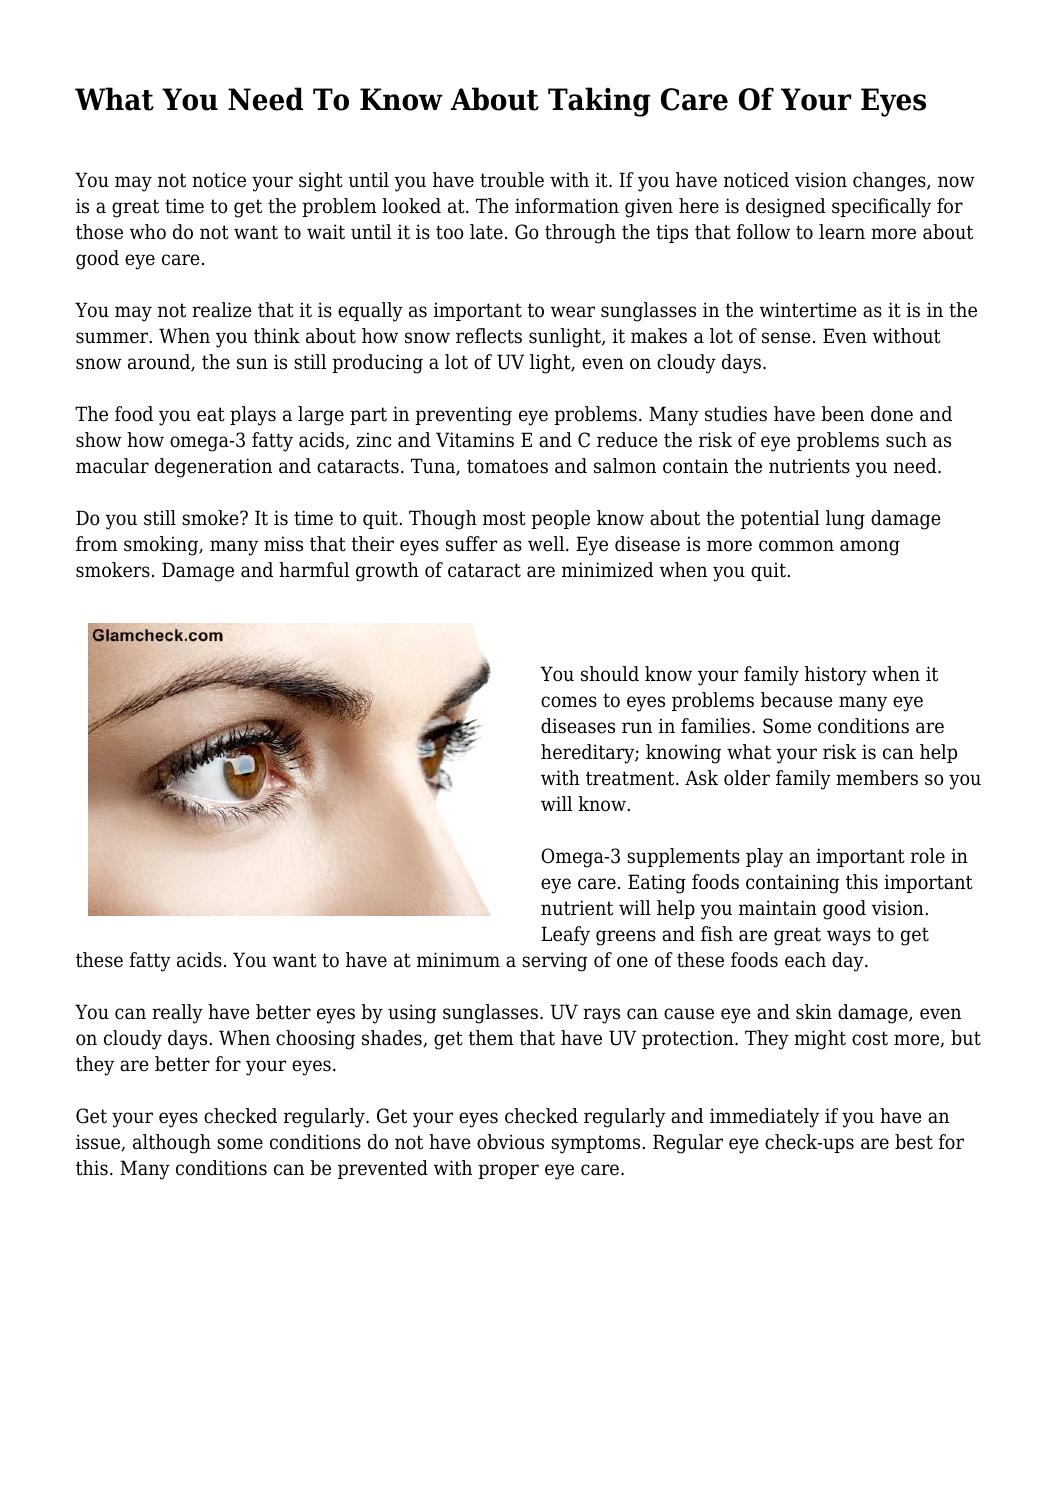 704a4e21e57 What You Need To Know About Taking Care Of Your Eyes by ariellabenjamin09 -  issuu